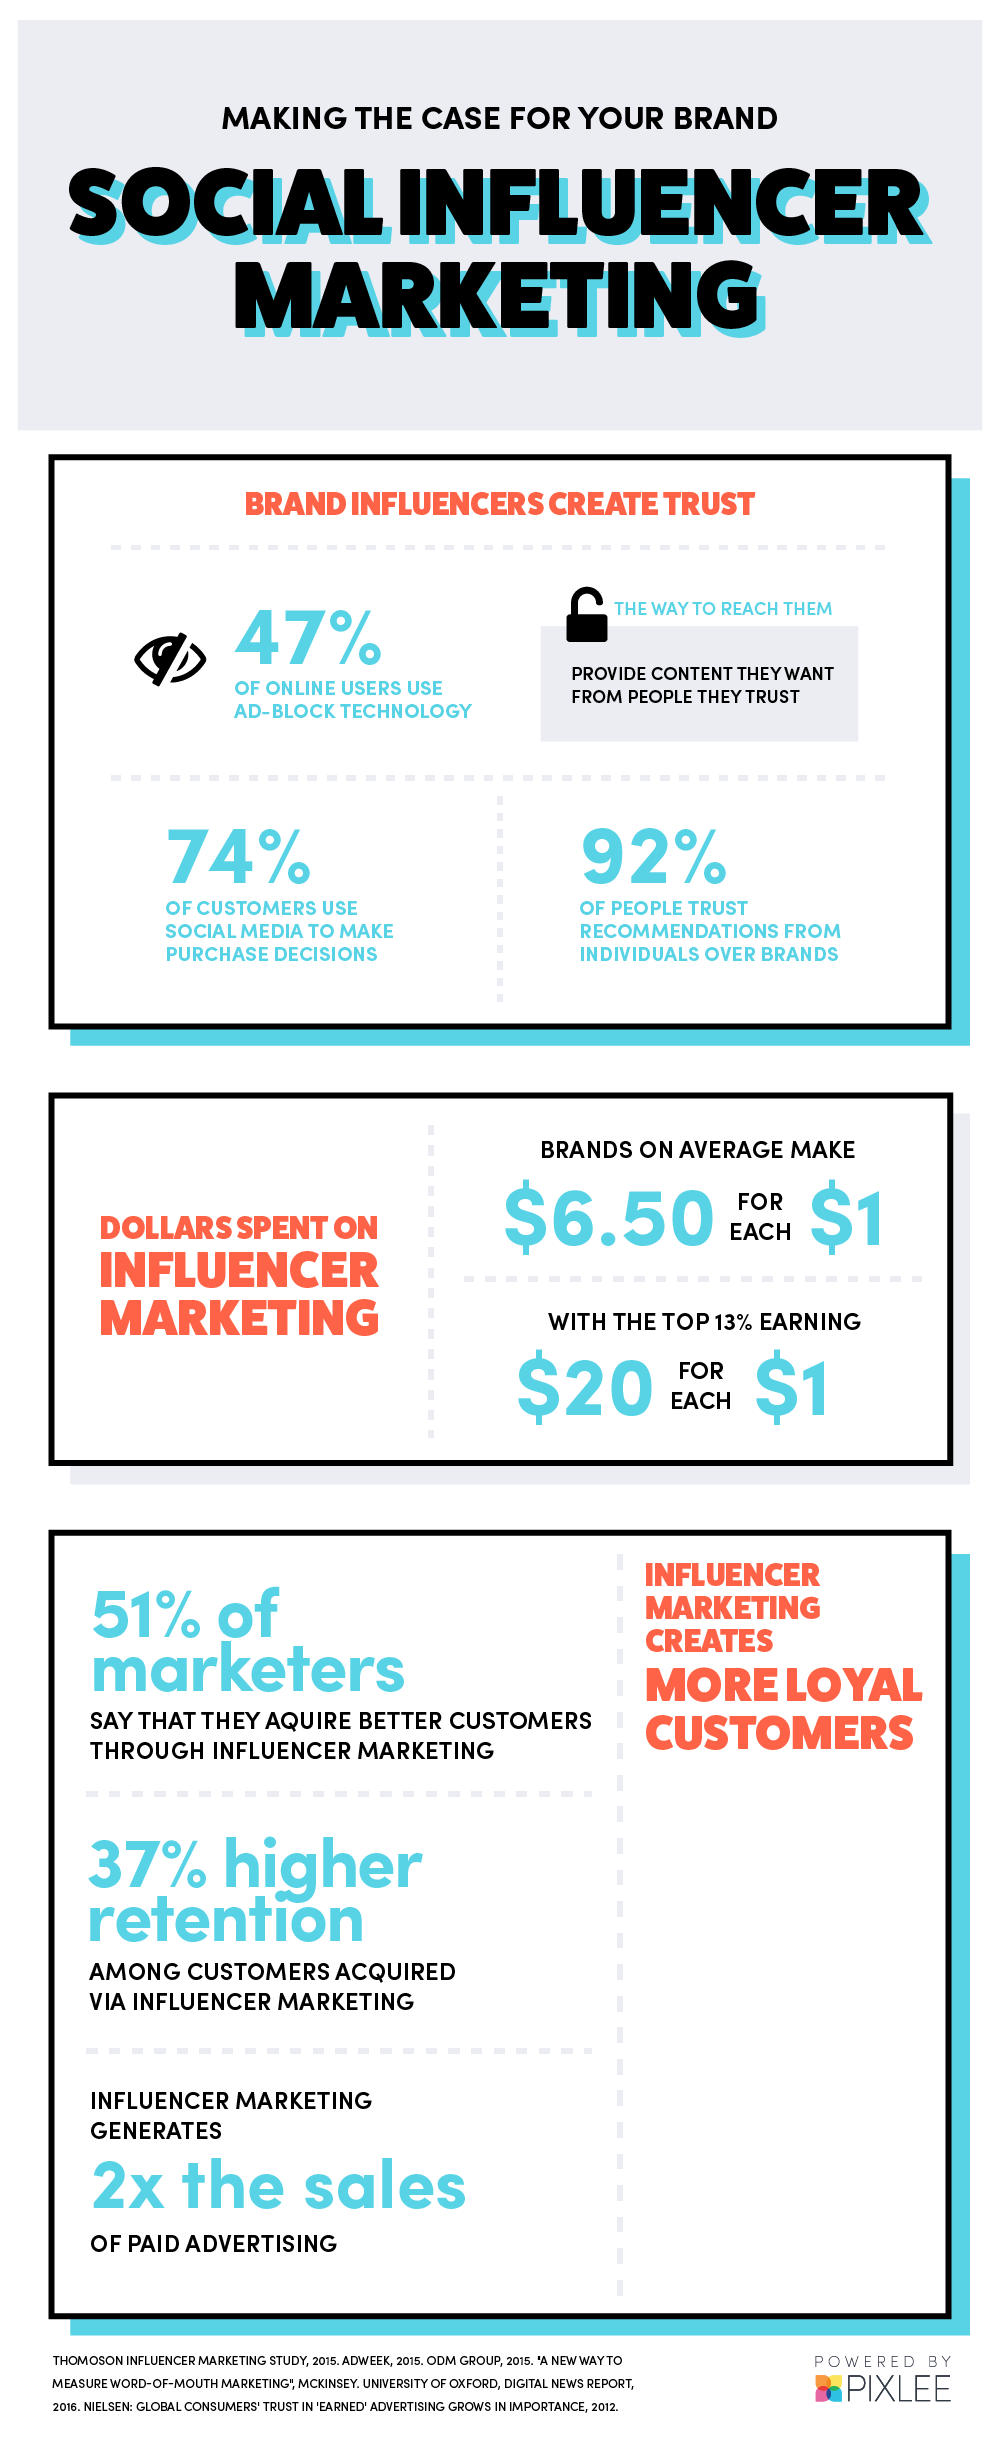 The Best Influencer Marketing Platform for Finding Instagram Influencers [Infographic]